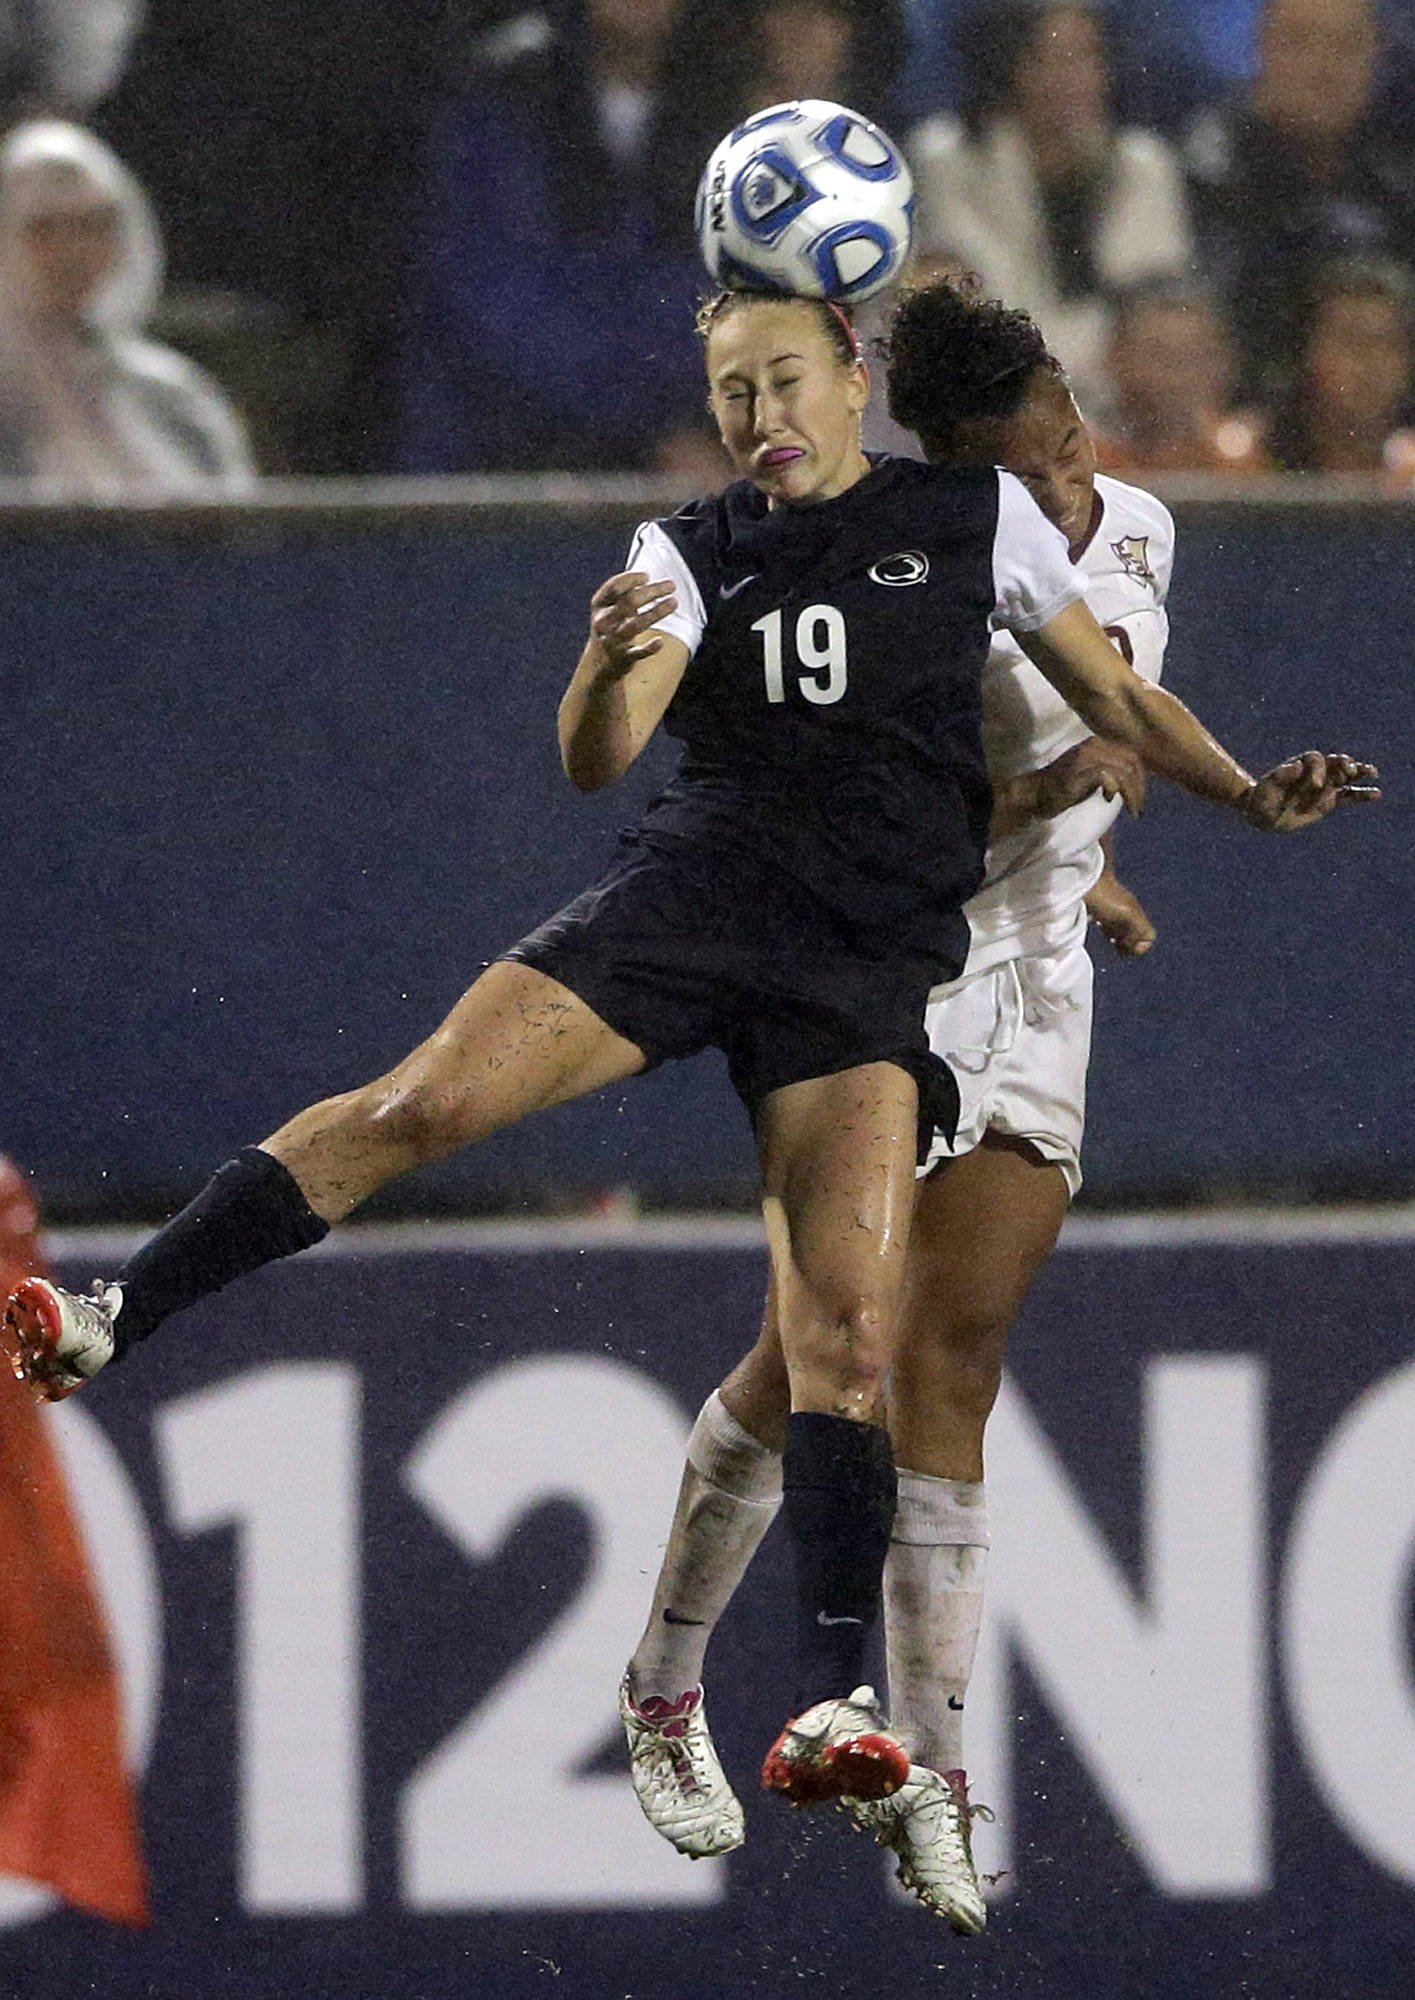 Penn State's Taylor Schram, left, and Ines Jaurena vie for a header. (AP Photo/Gregory Bull)